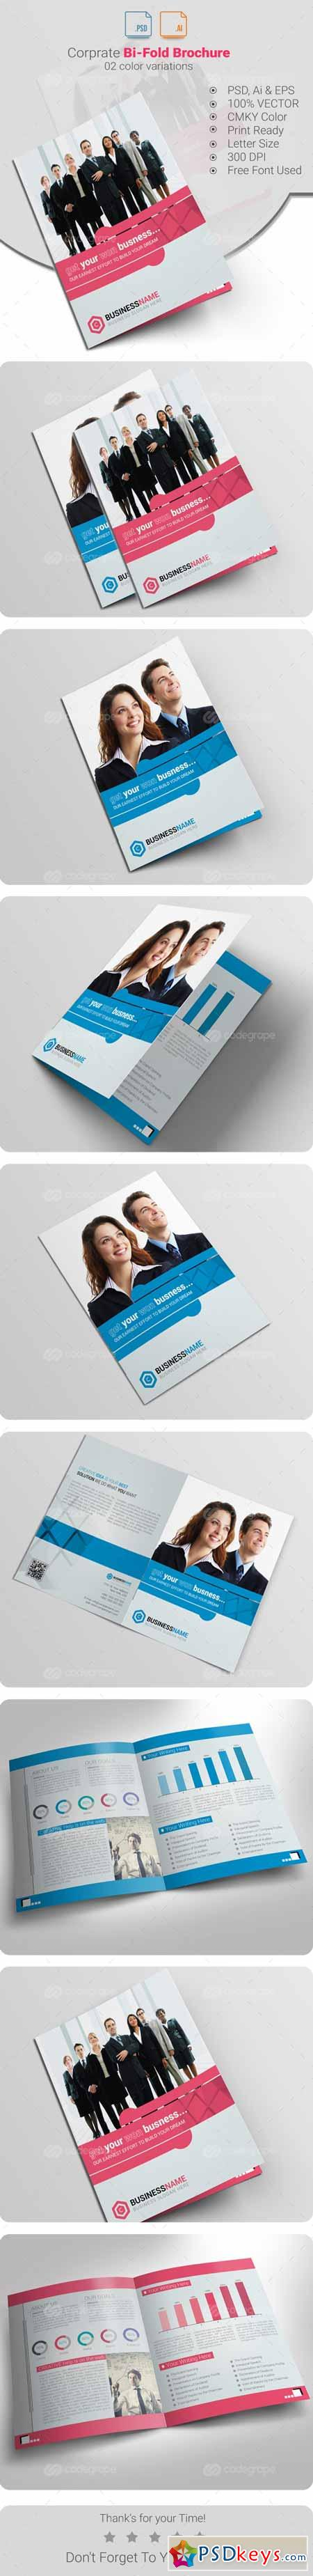 2 fold brochure template photoshop - bi fold brochure 6212 free download photoshop vector